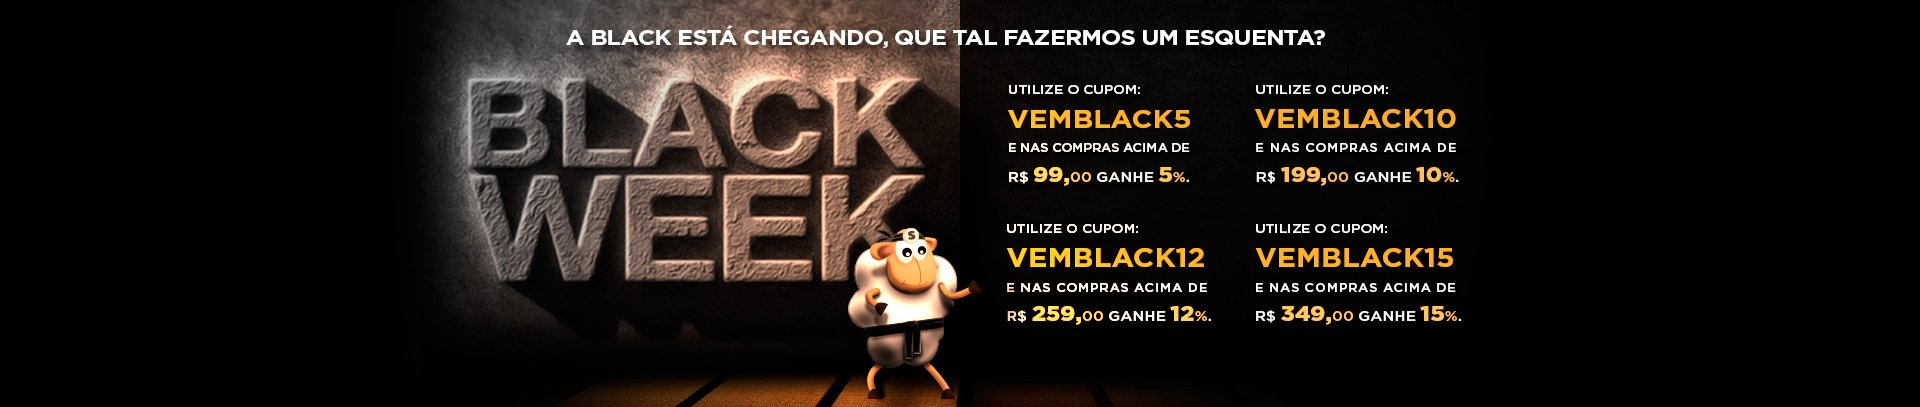 Campanha: Esquenta Black November